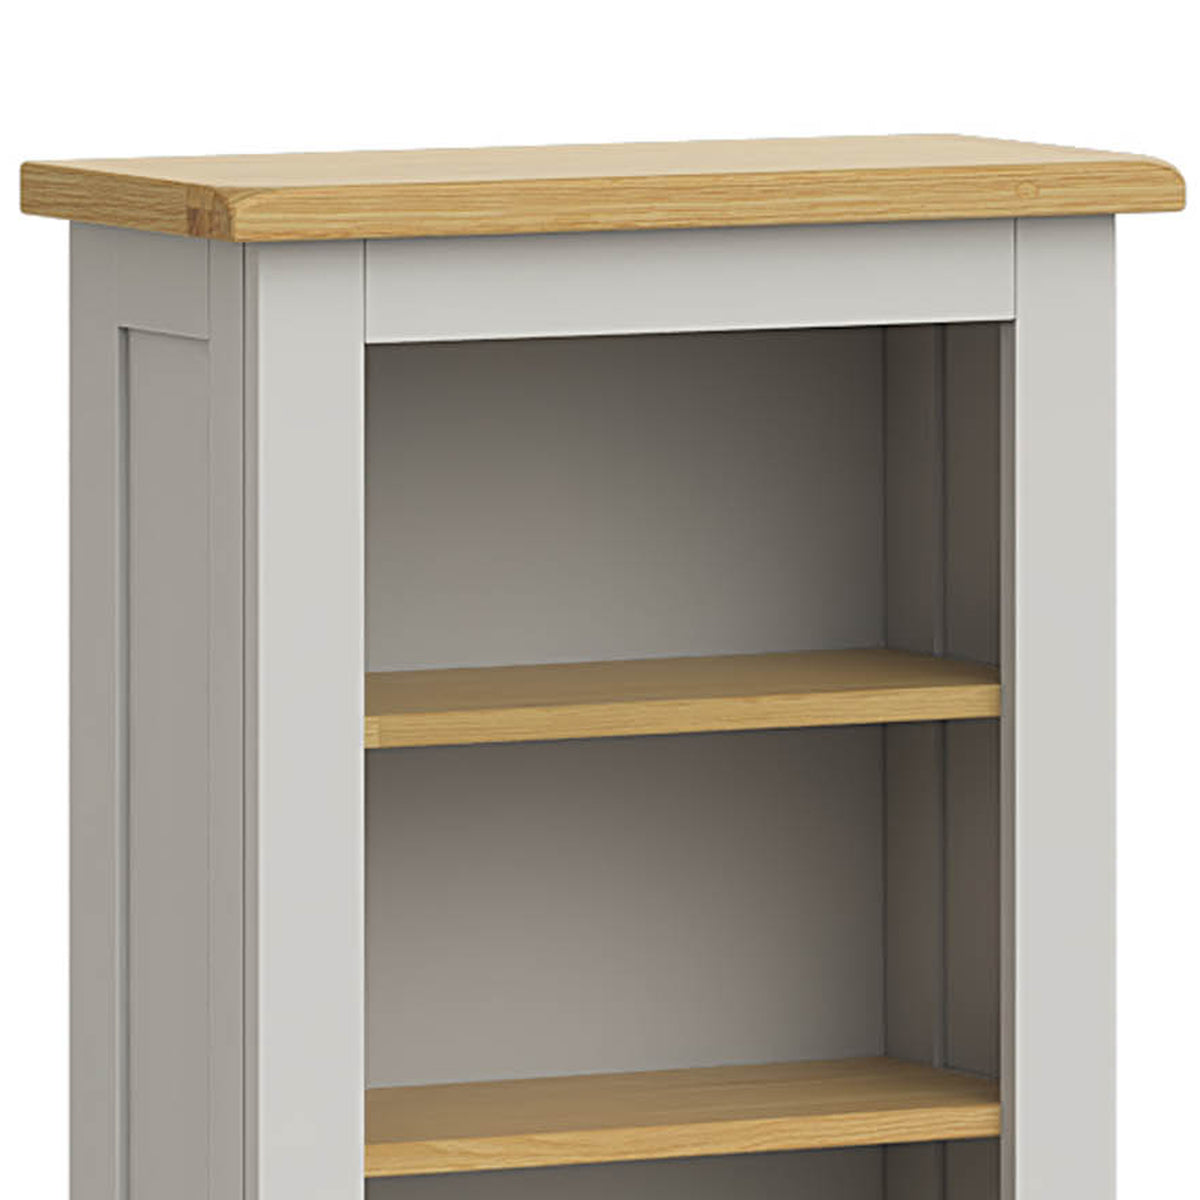 Lundy Grey Narrow Bookcase - Close Up of Top